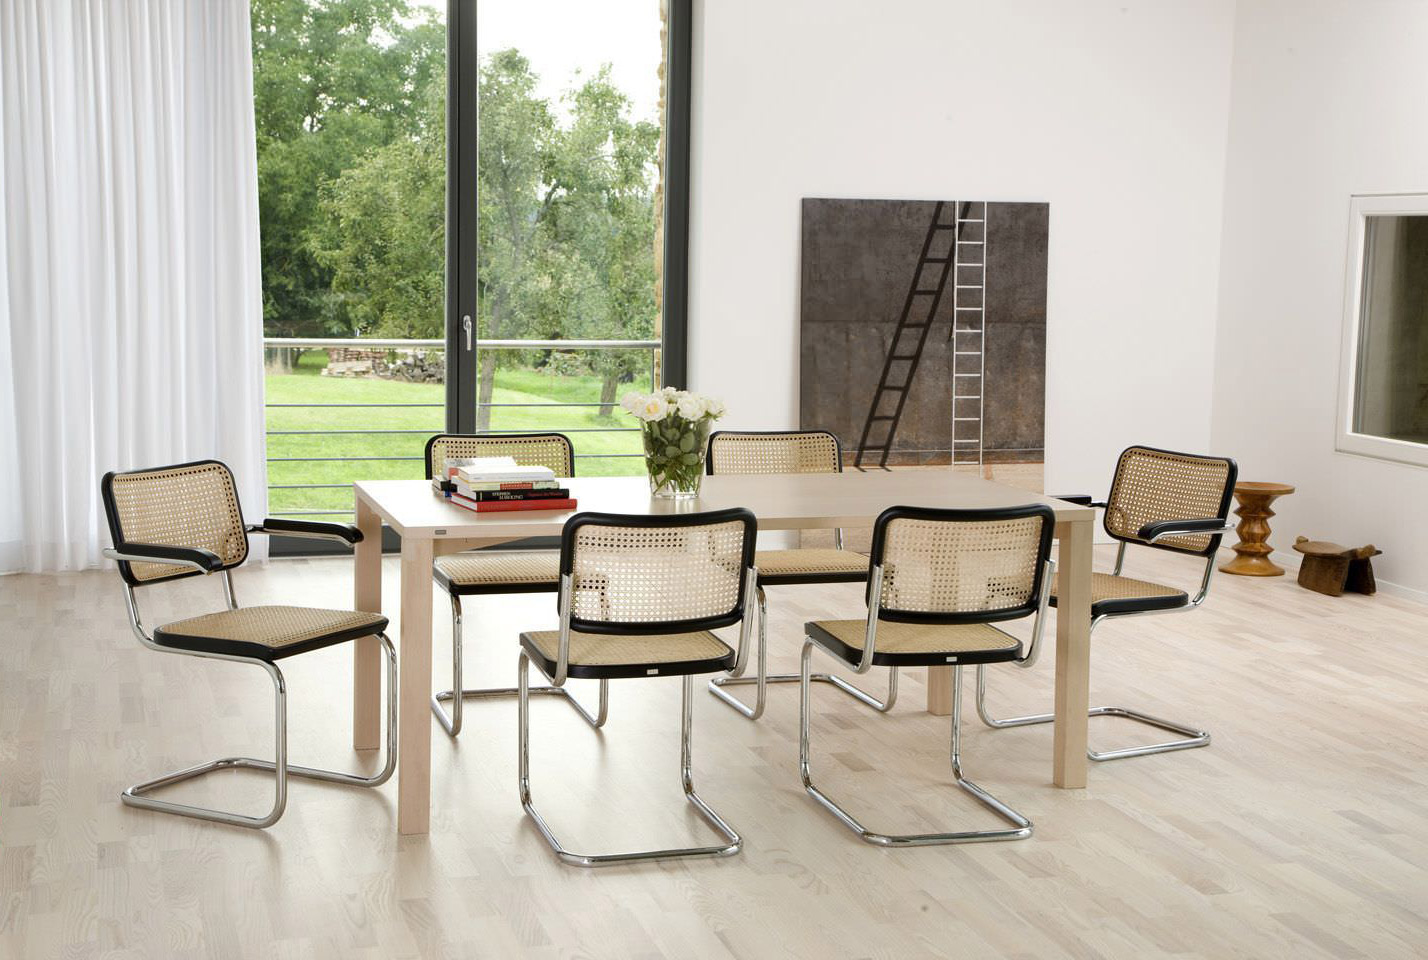 Thonet Chairs Important Pieces In The History Of Design And Furniture Making Photos